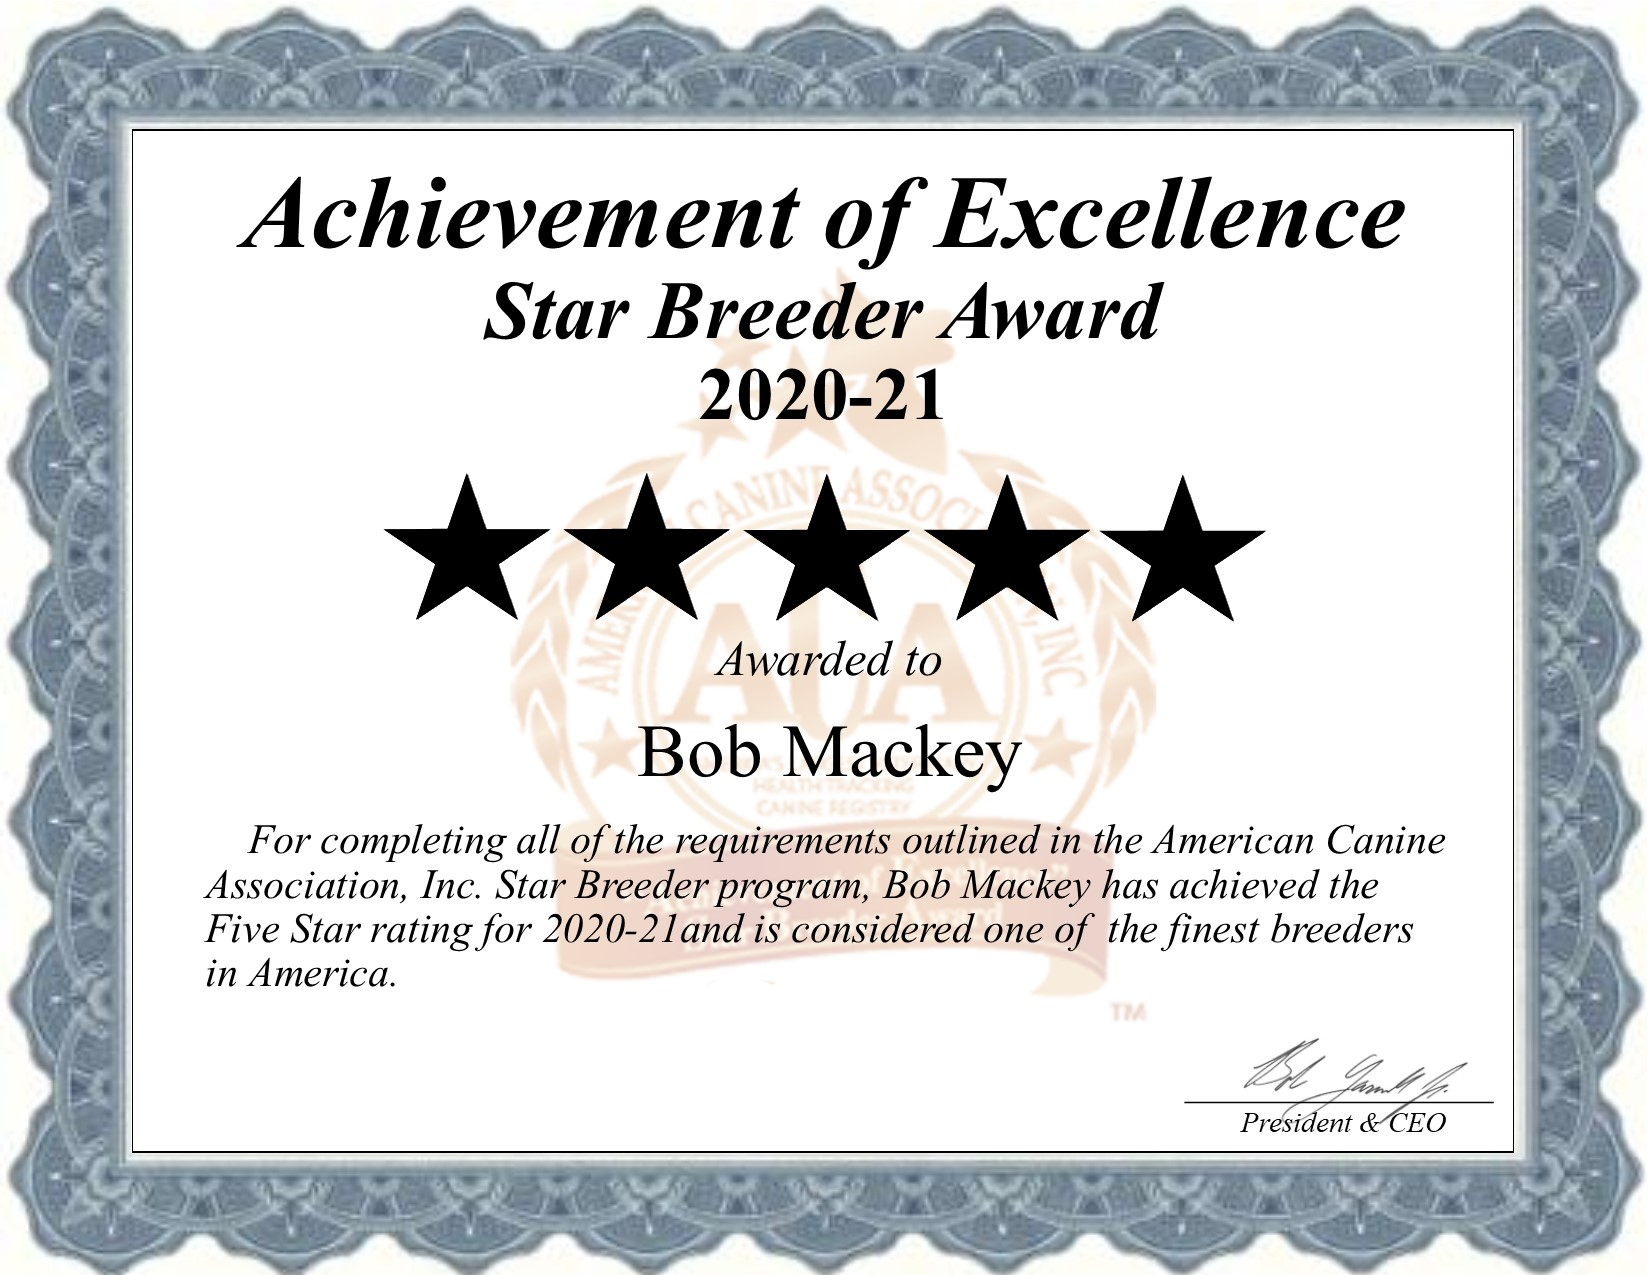 bob, mackey, dog, breeder, certificate, bob-mackey, sayer, dog-breeder, puppies, pups, ok, oklahoma, usda, 73-B-1857, no, show,  kennel, professional, county, pure bred, purebred, five, 5, puppy, breeders, star breeder, 5 star, puppy, puppies, ACA, ICA, 73B1857